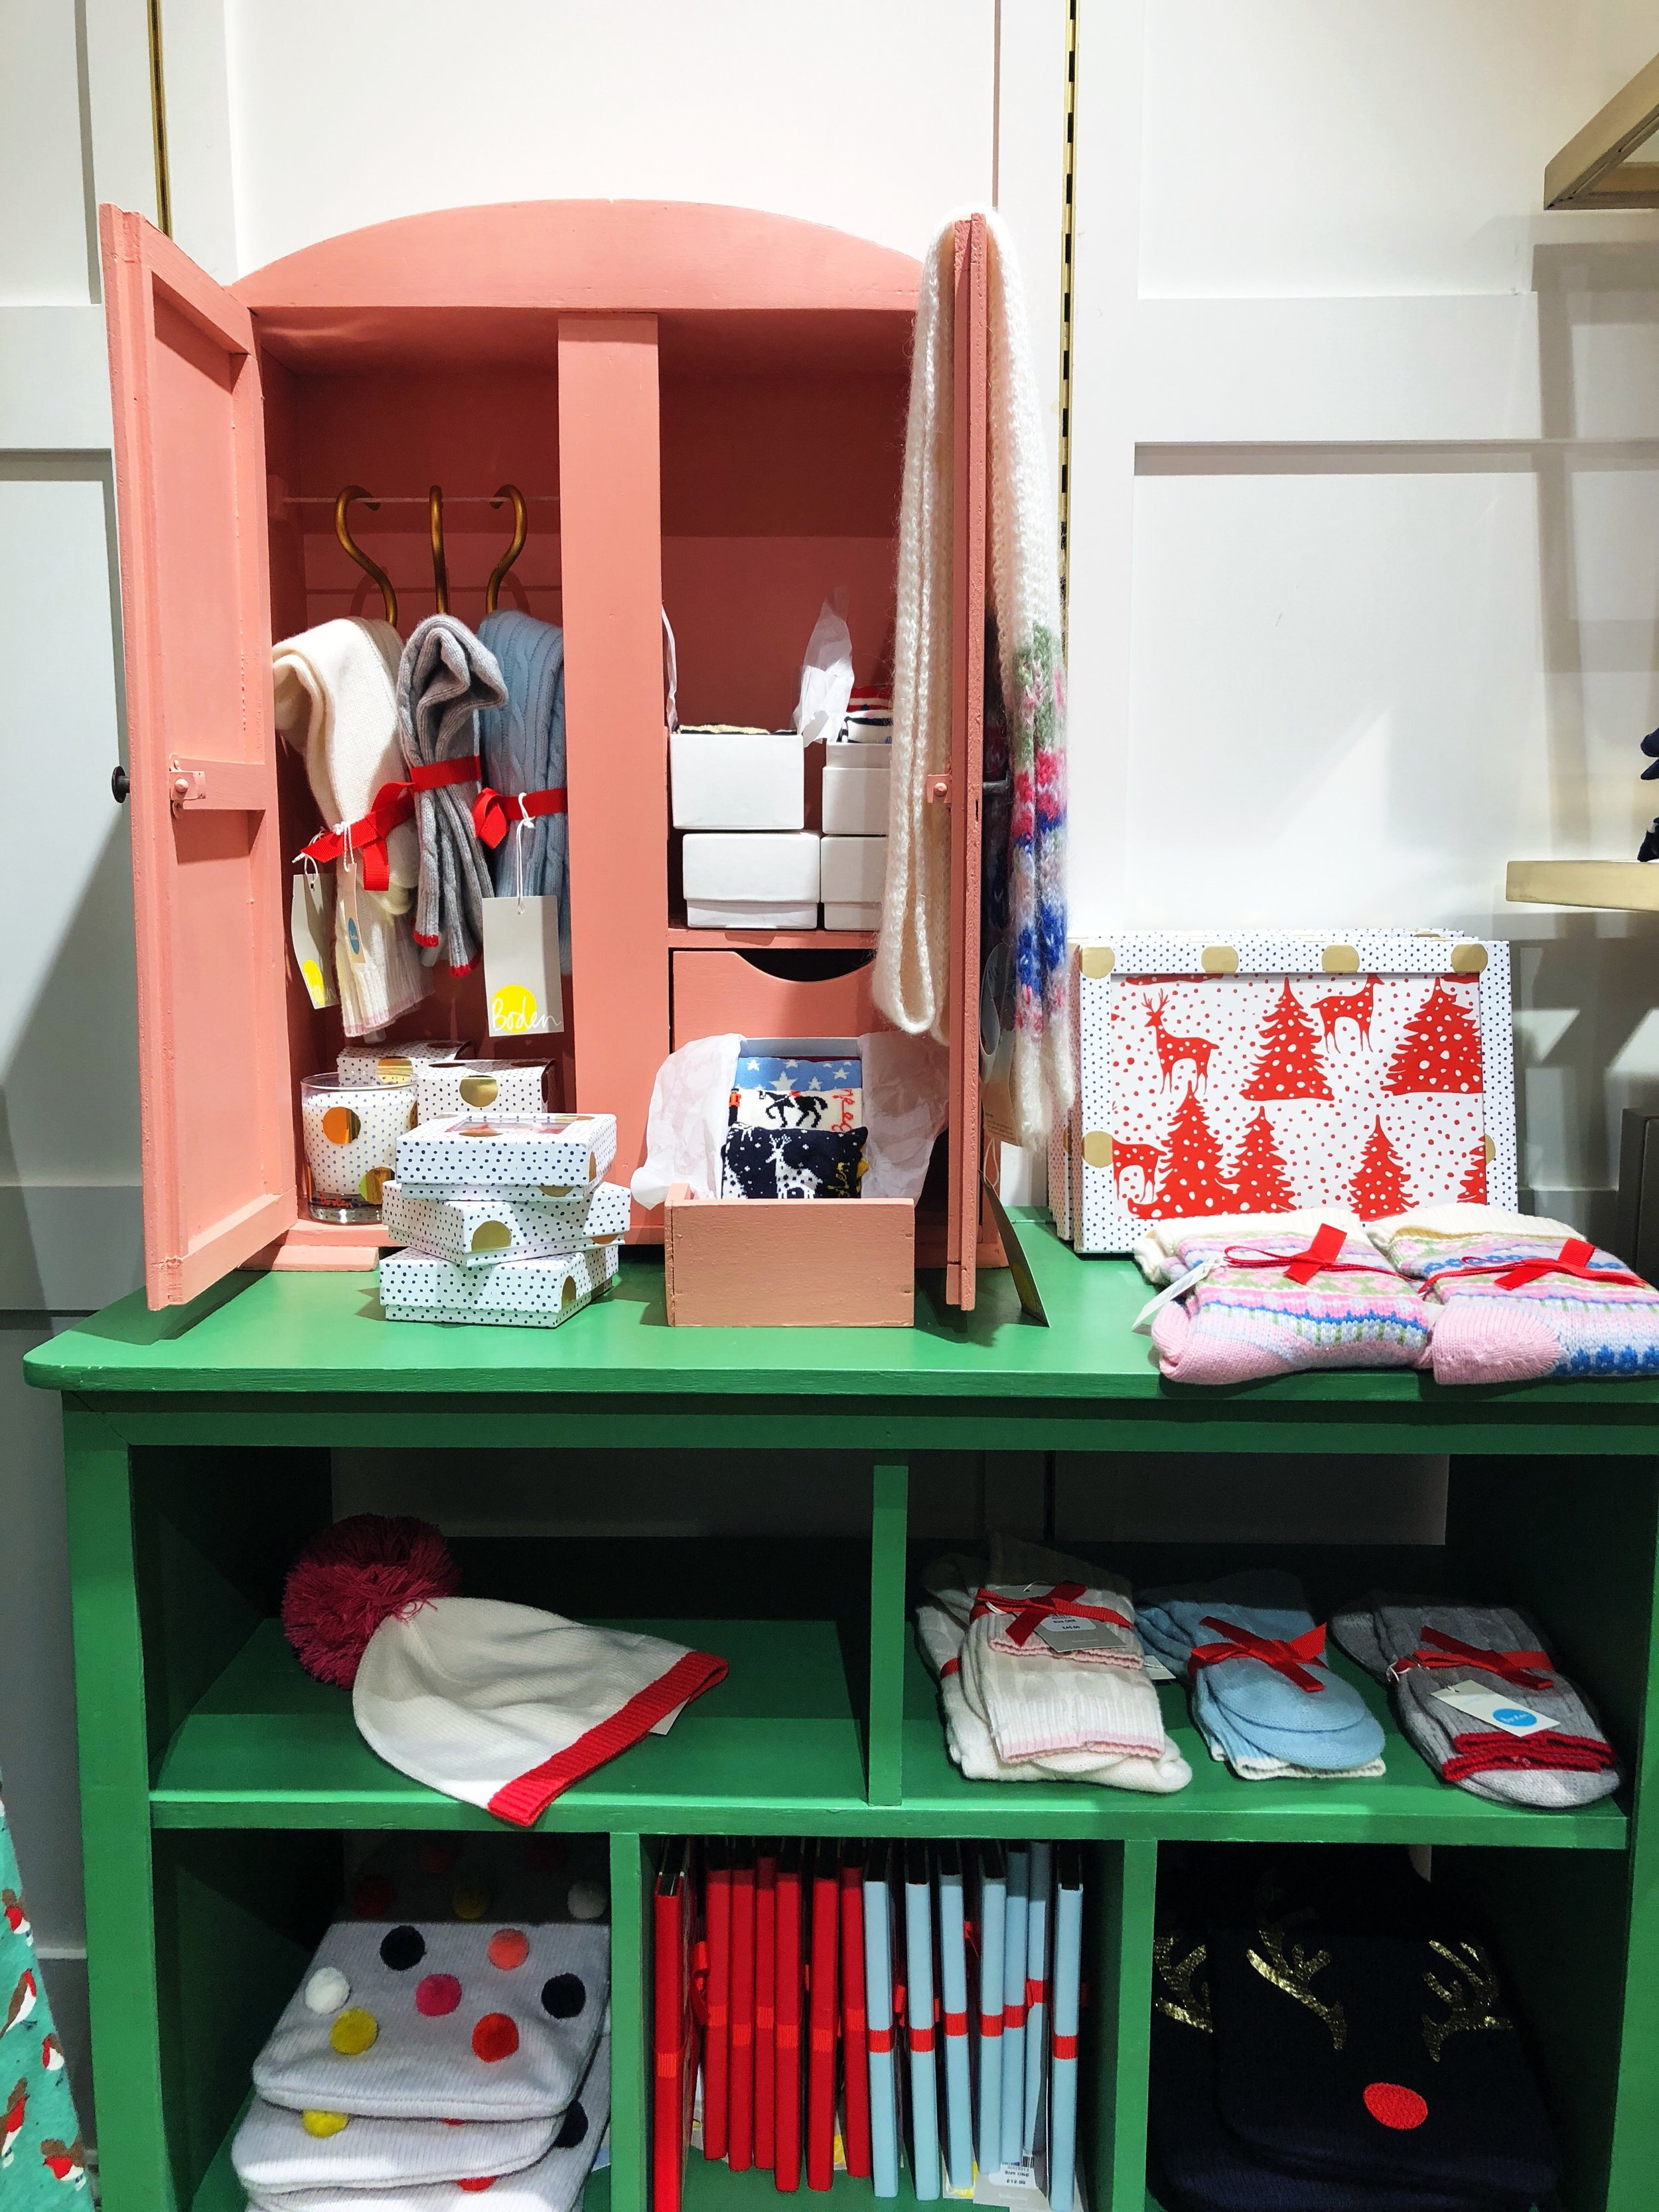 The Boden Store, London : The Quinskis